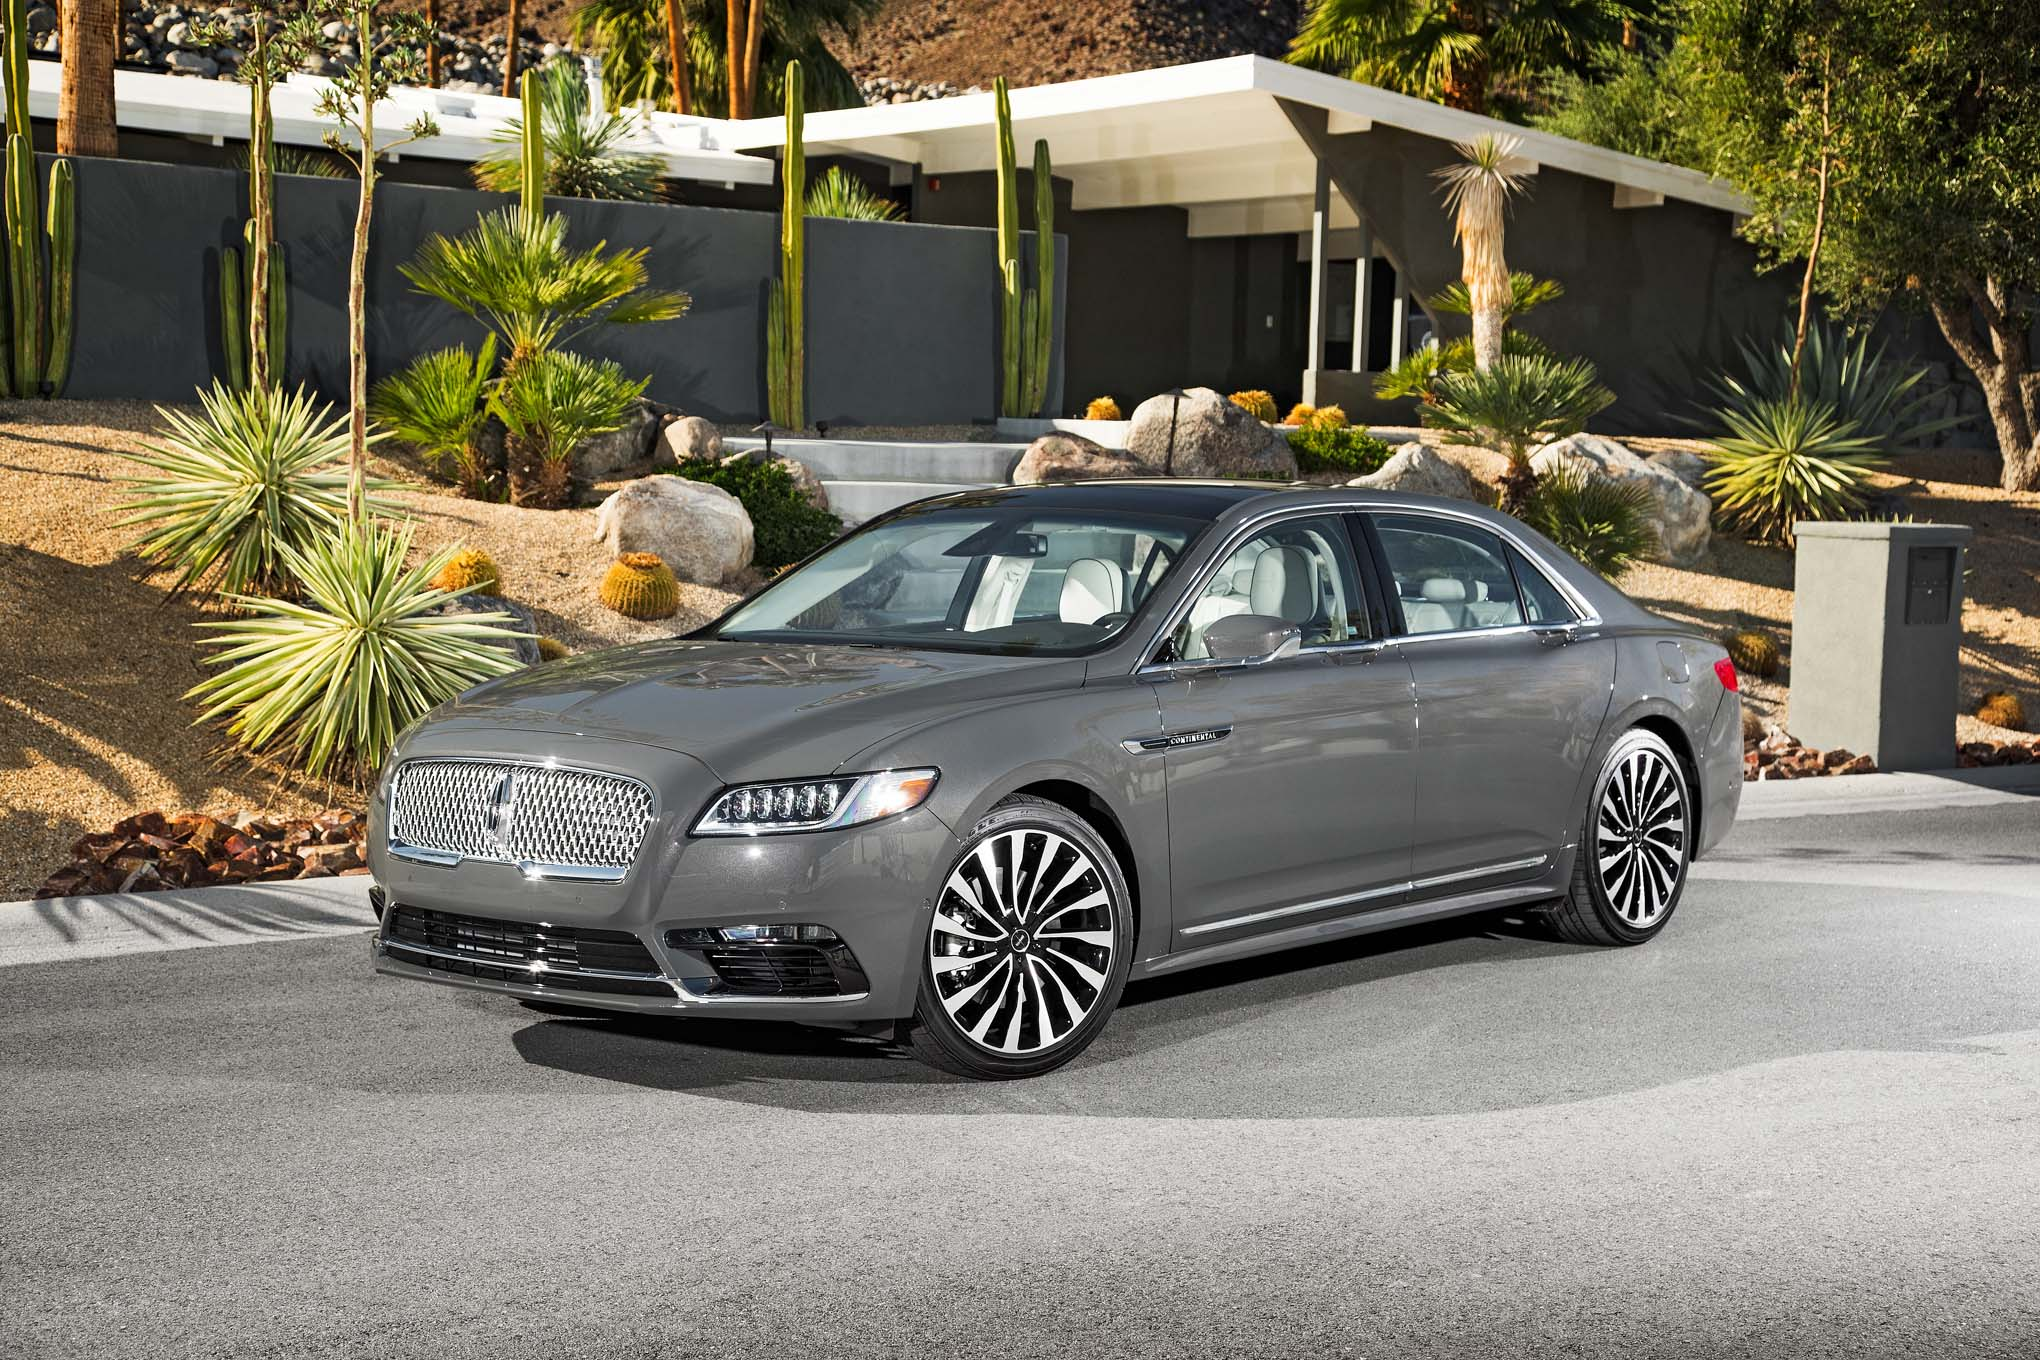 2017 Lincoln Continental Exterior (Photo 2 of 41)